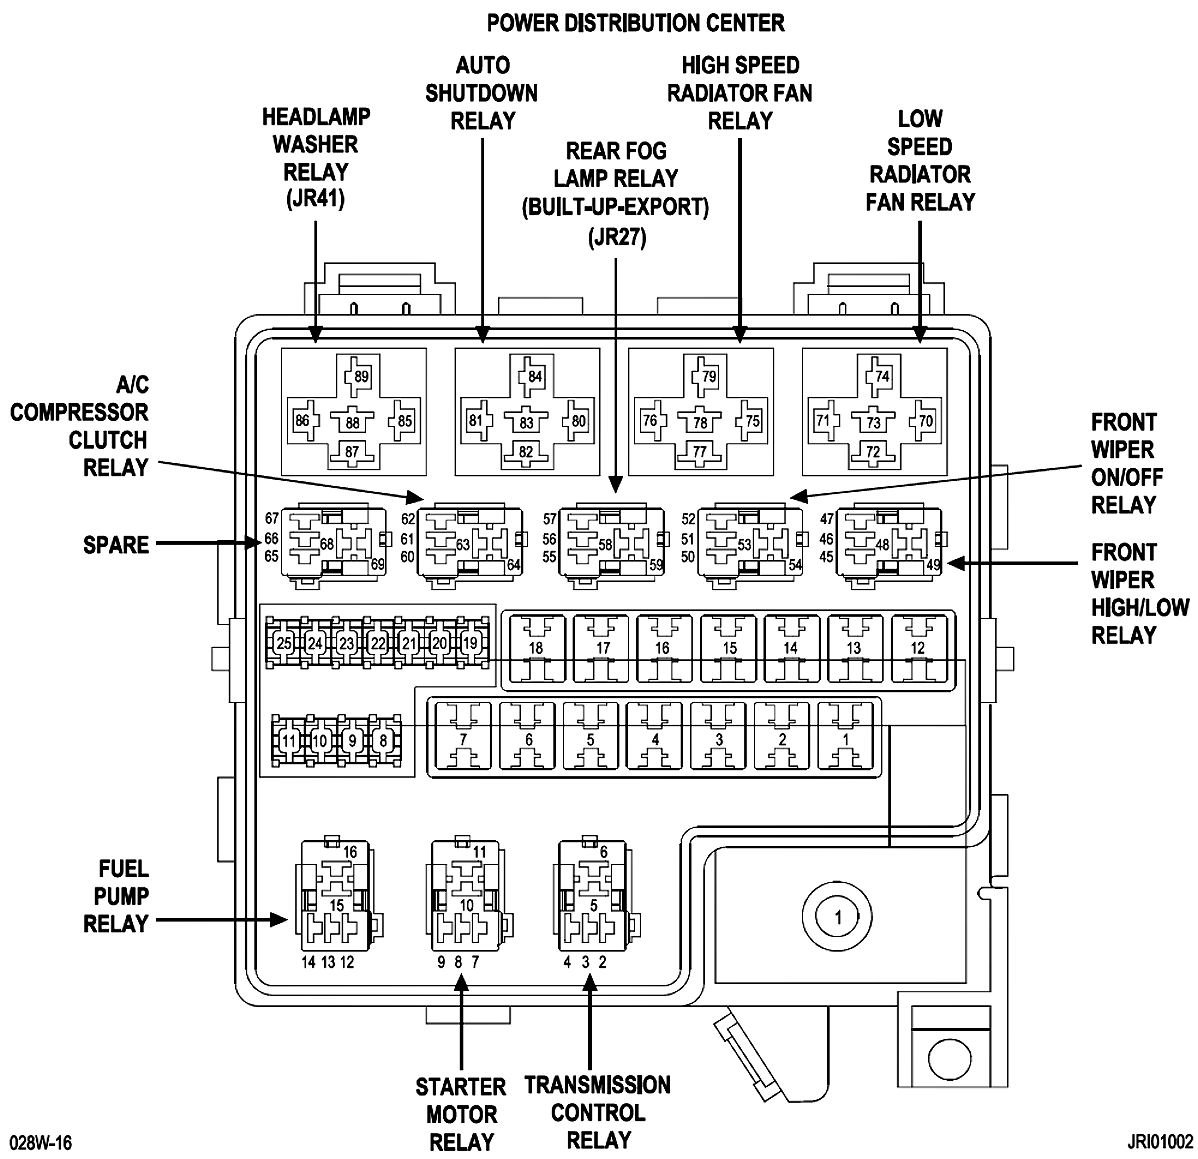 013 Lincoln Mkt Fuse Box Diagram Wiring Diagrams